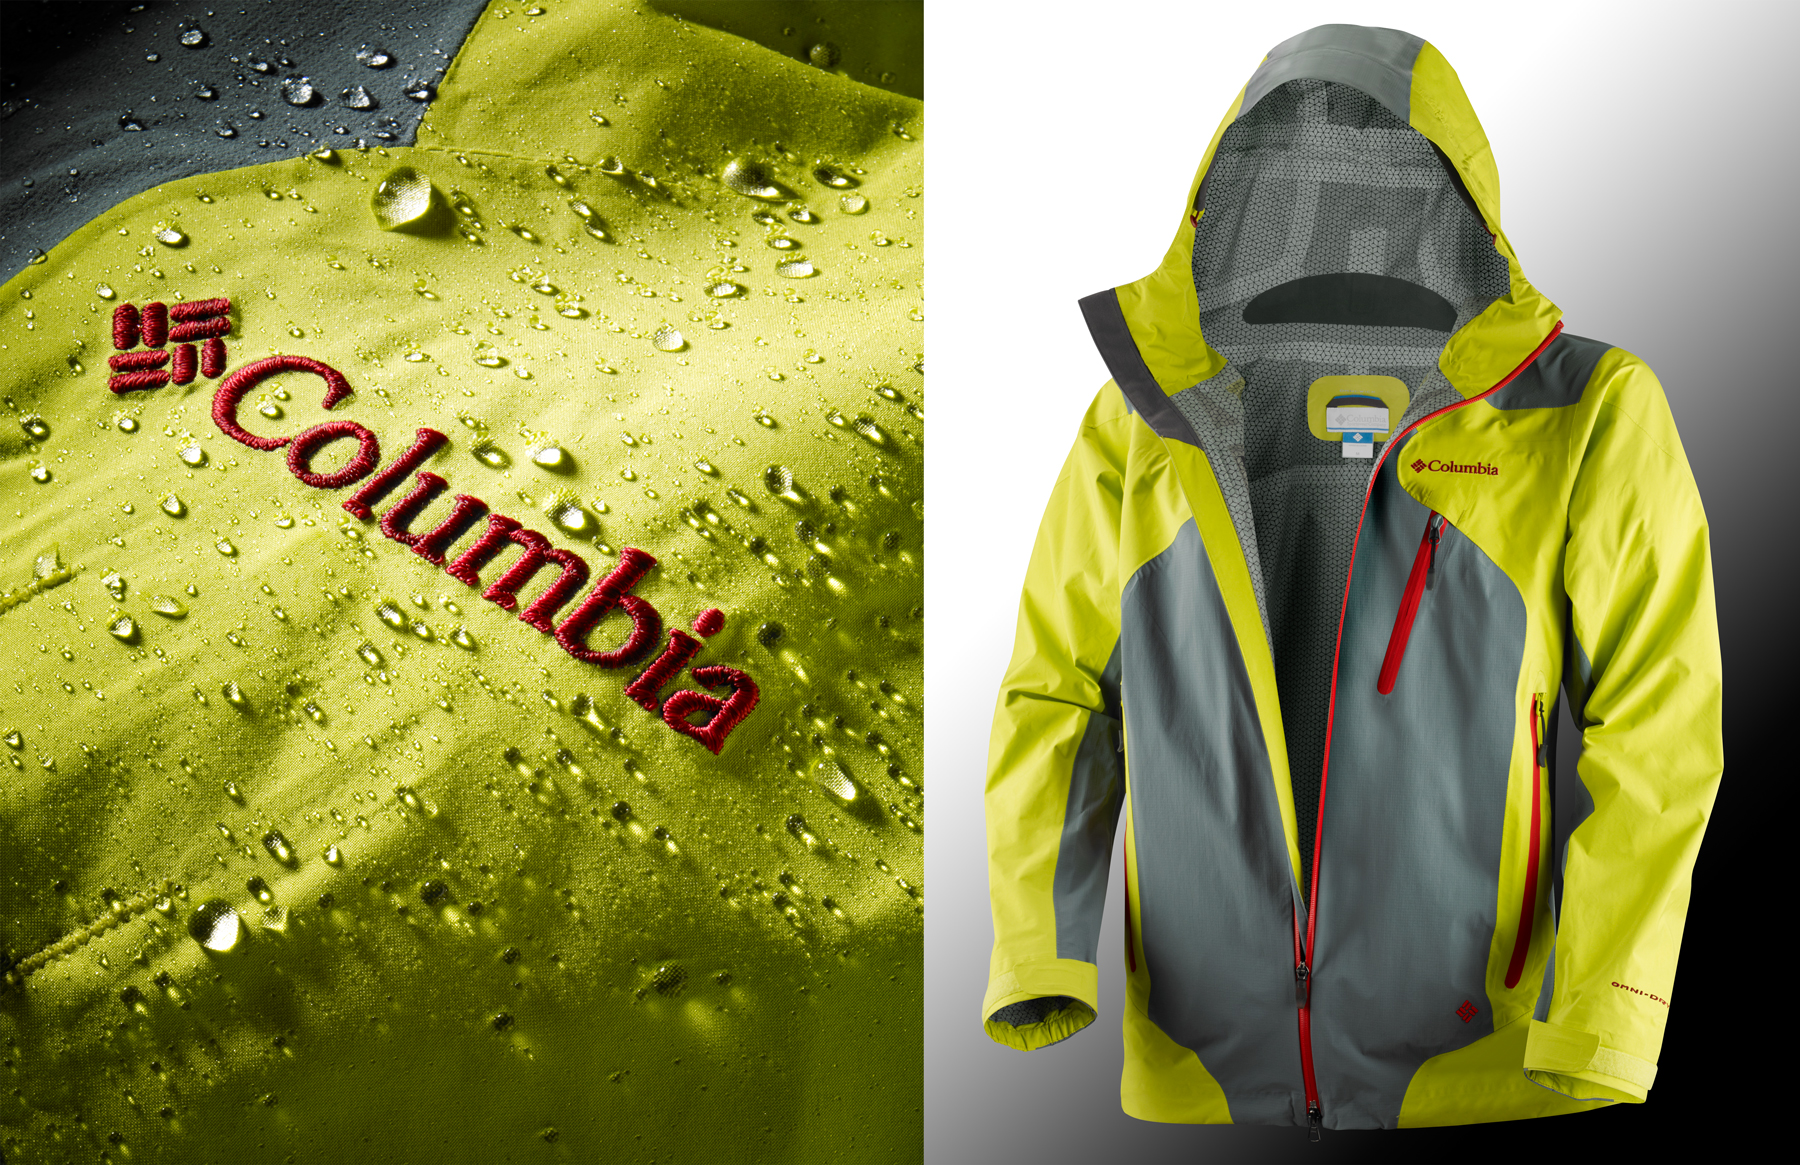 Columbia jacket with rain drops | Dovis Bird Agency Reps